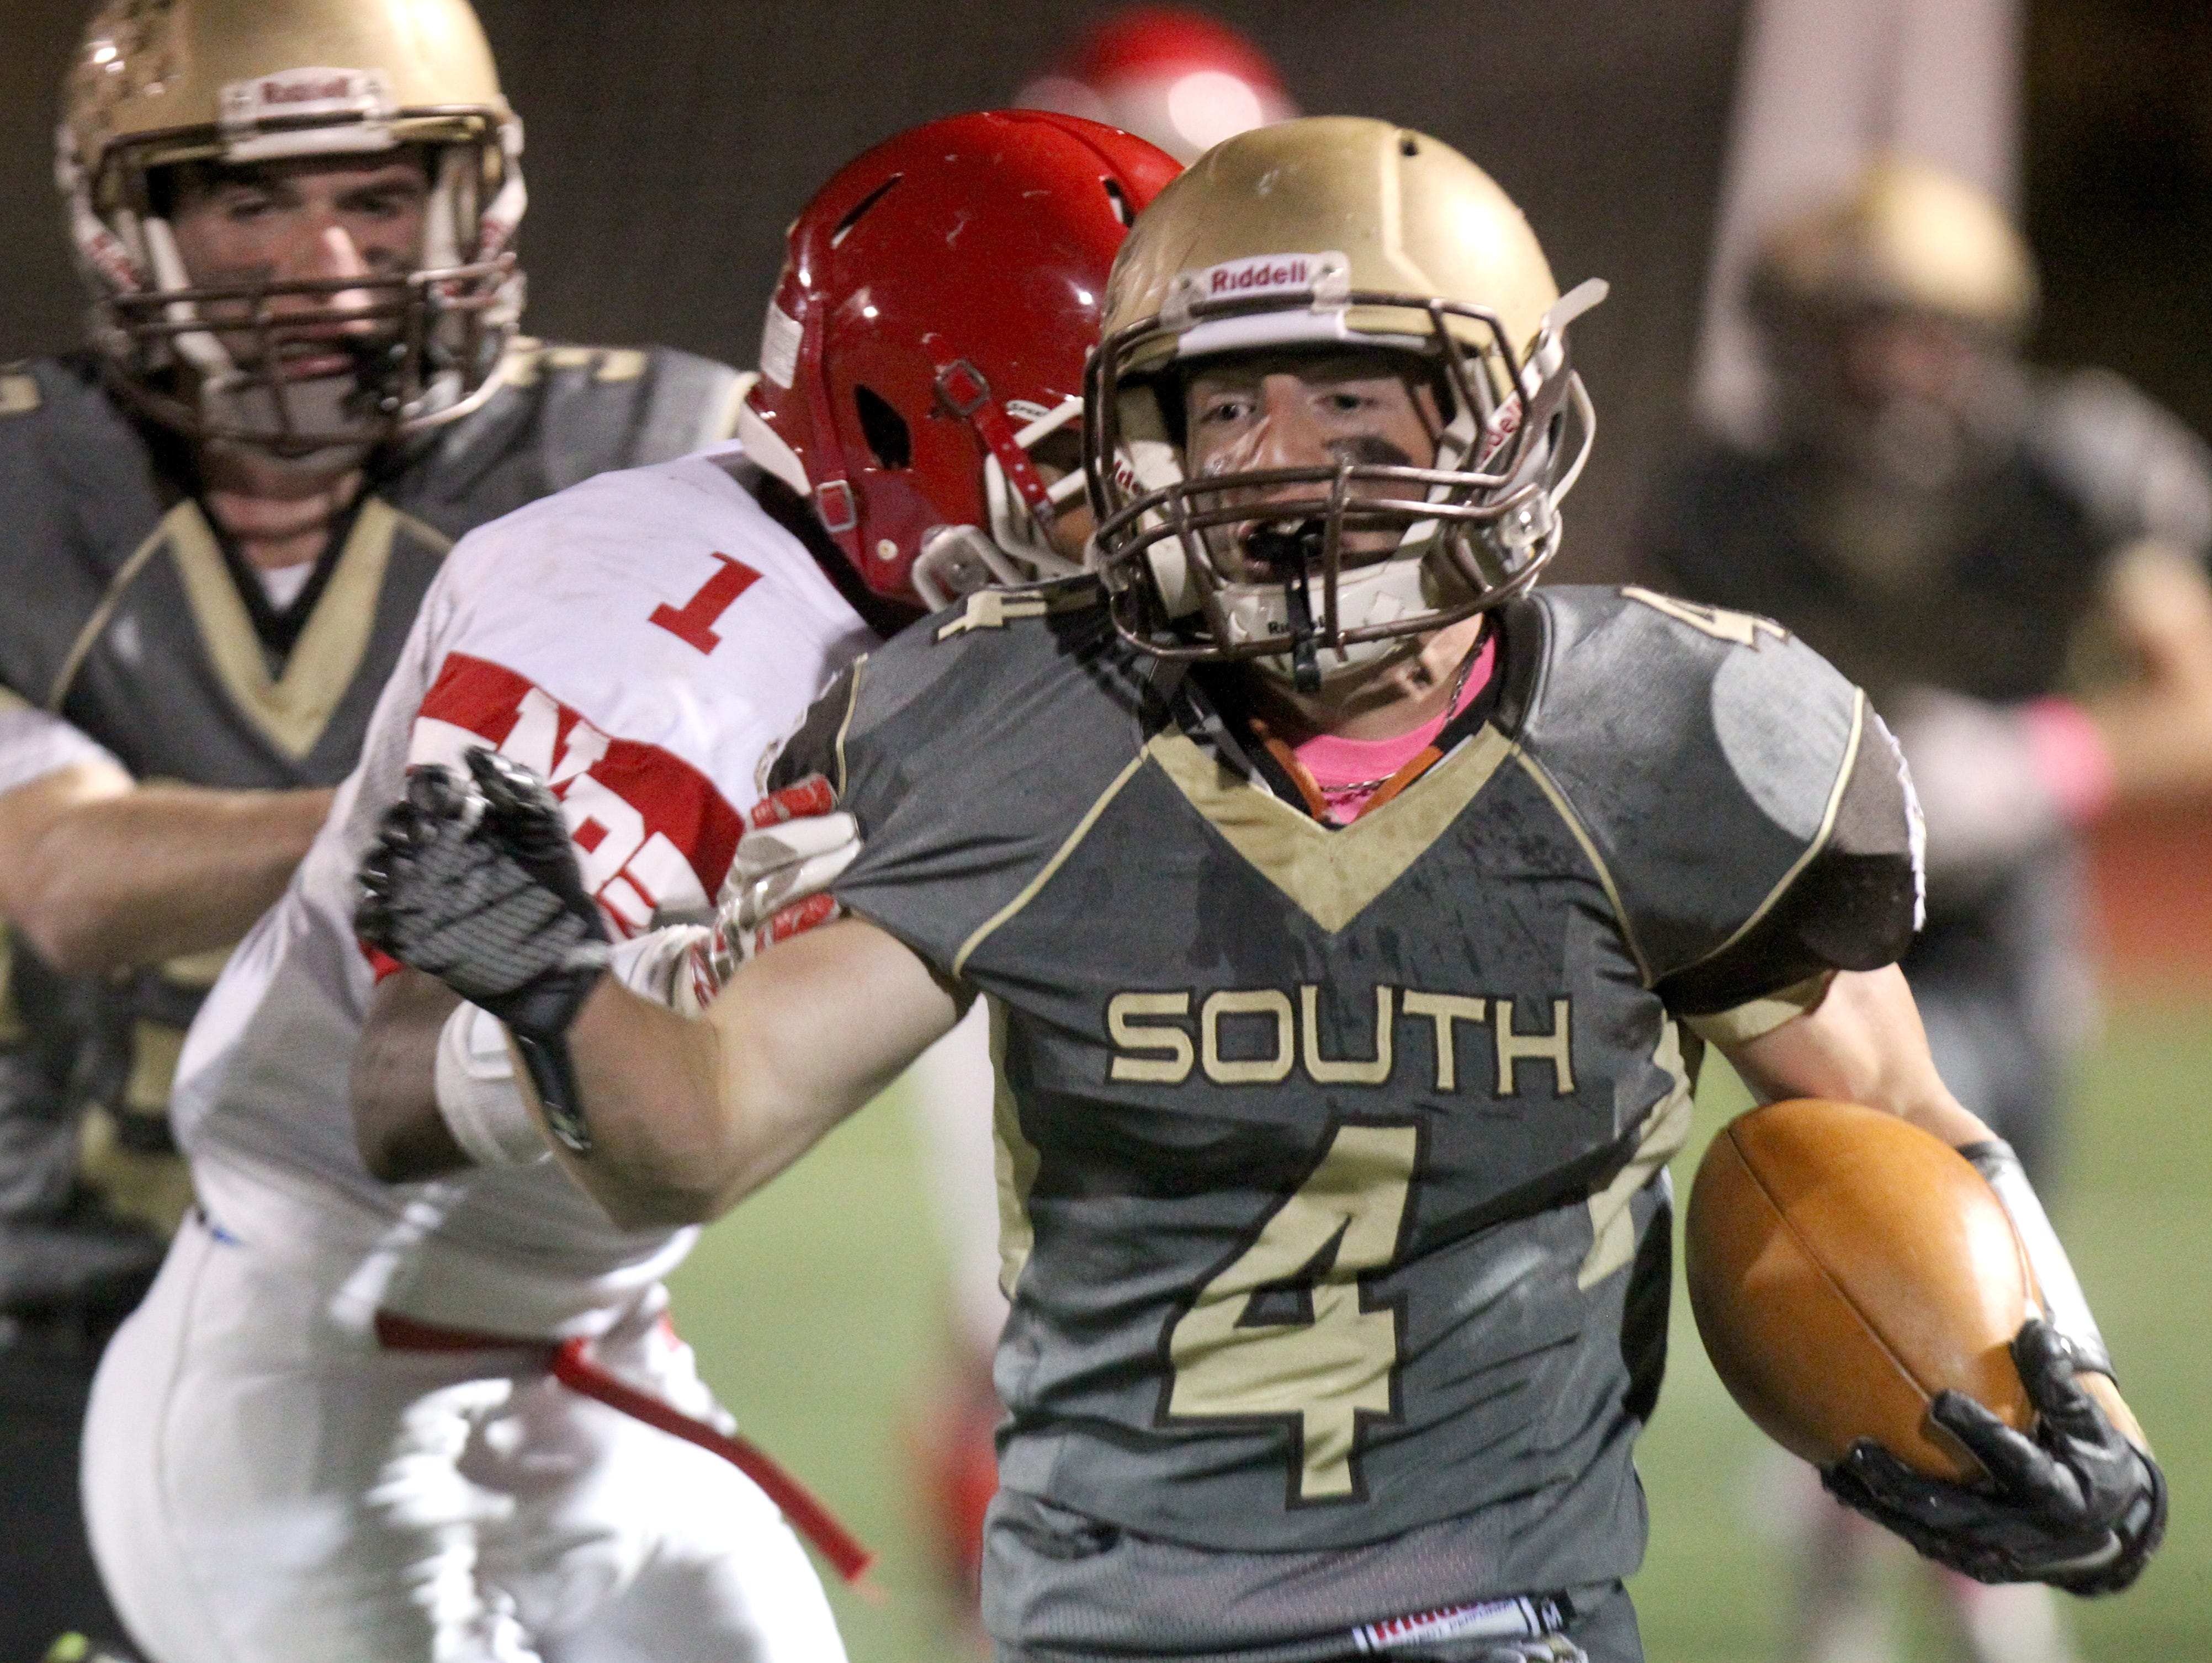 Clarkstown South's Kyle Samuels breaks past North Rockland's Lamar Seward during their Class AA qualifying-round game at Clarkstown South on Oct. 16, 2015. Samuels is one of 25 finalists for The Journal News/lohud 2016 Super 11.